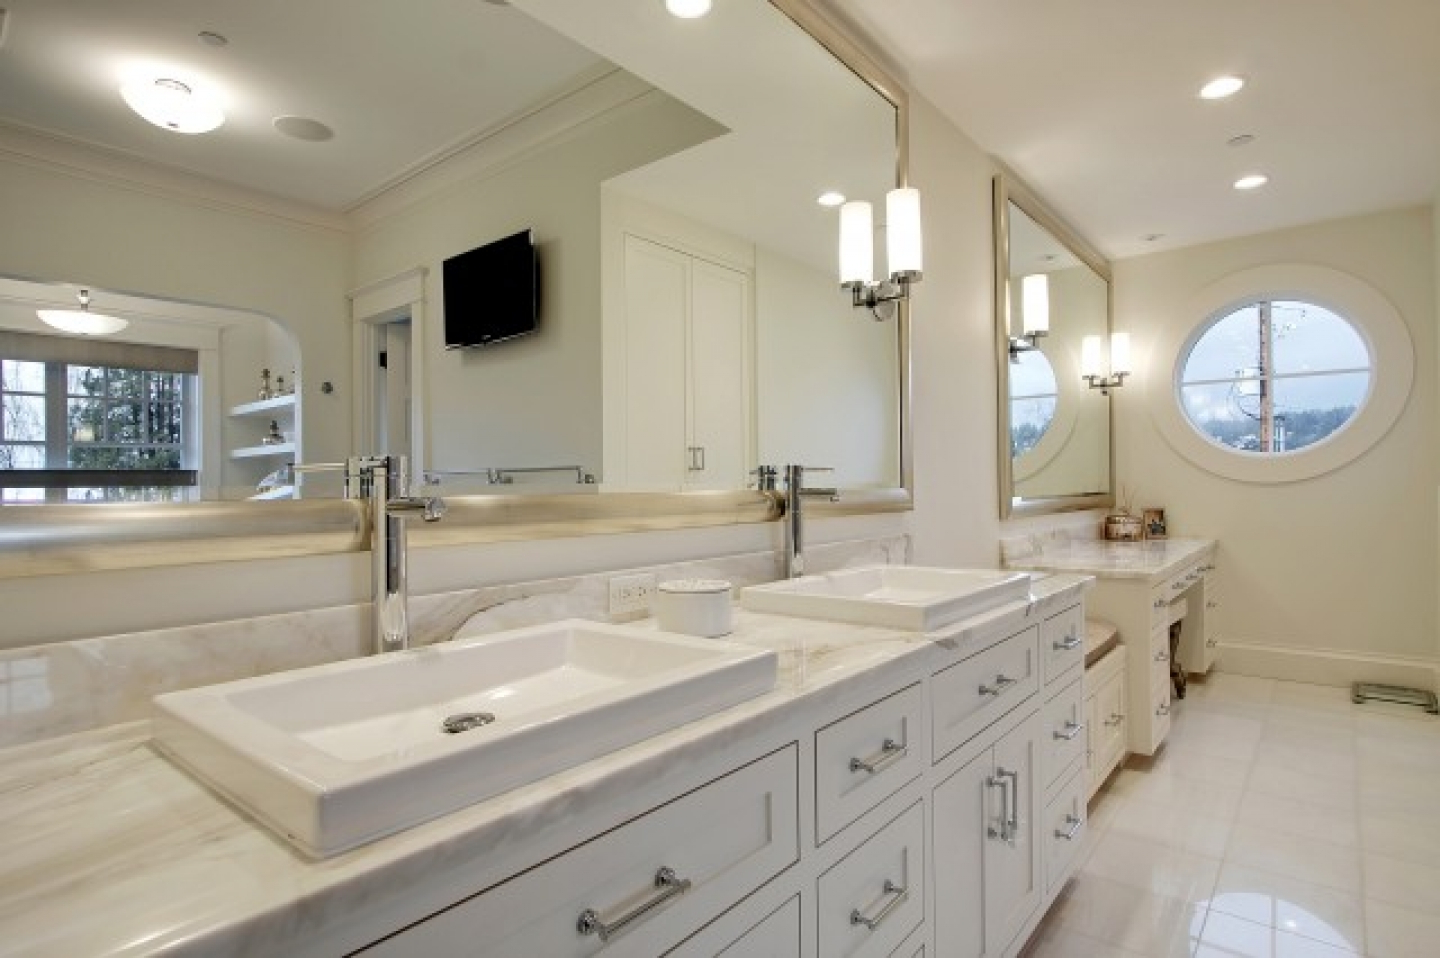 Residential Or Commercial Mirror And Glass Needs (Gallery 19 of 20)